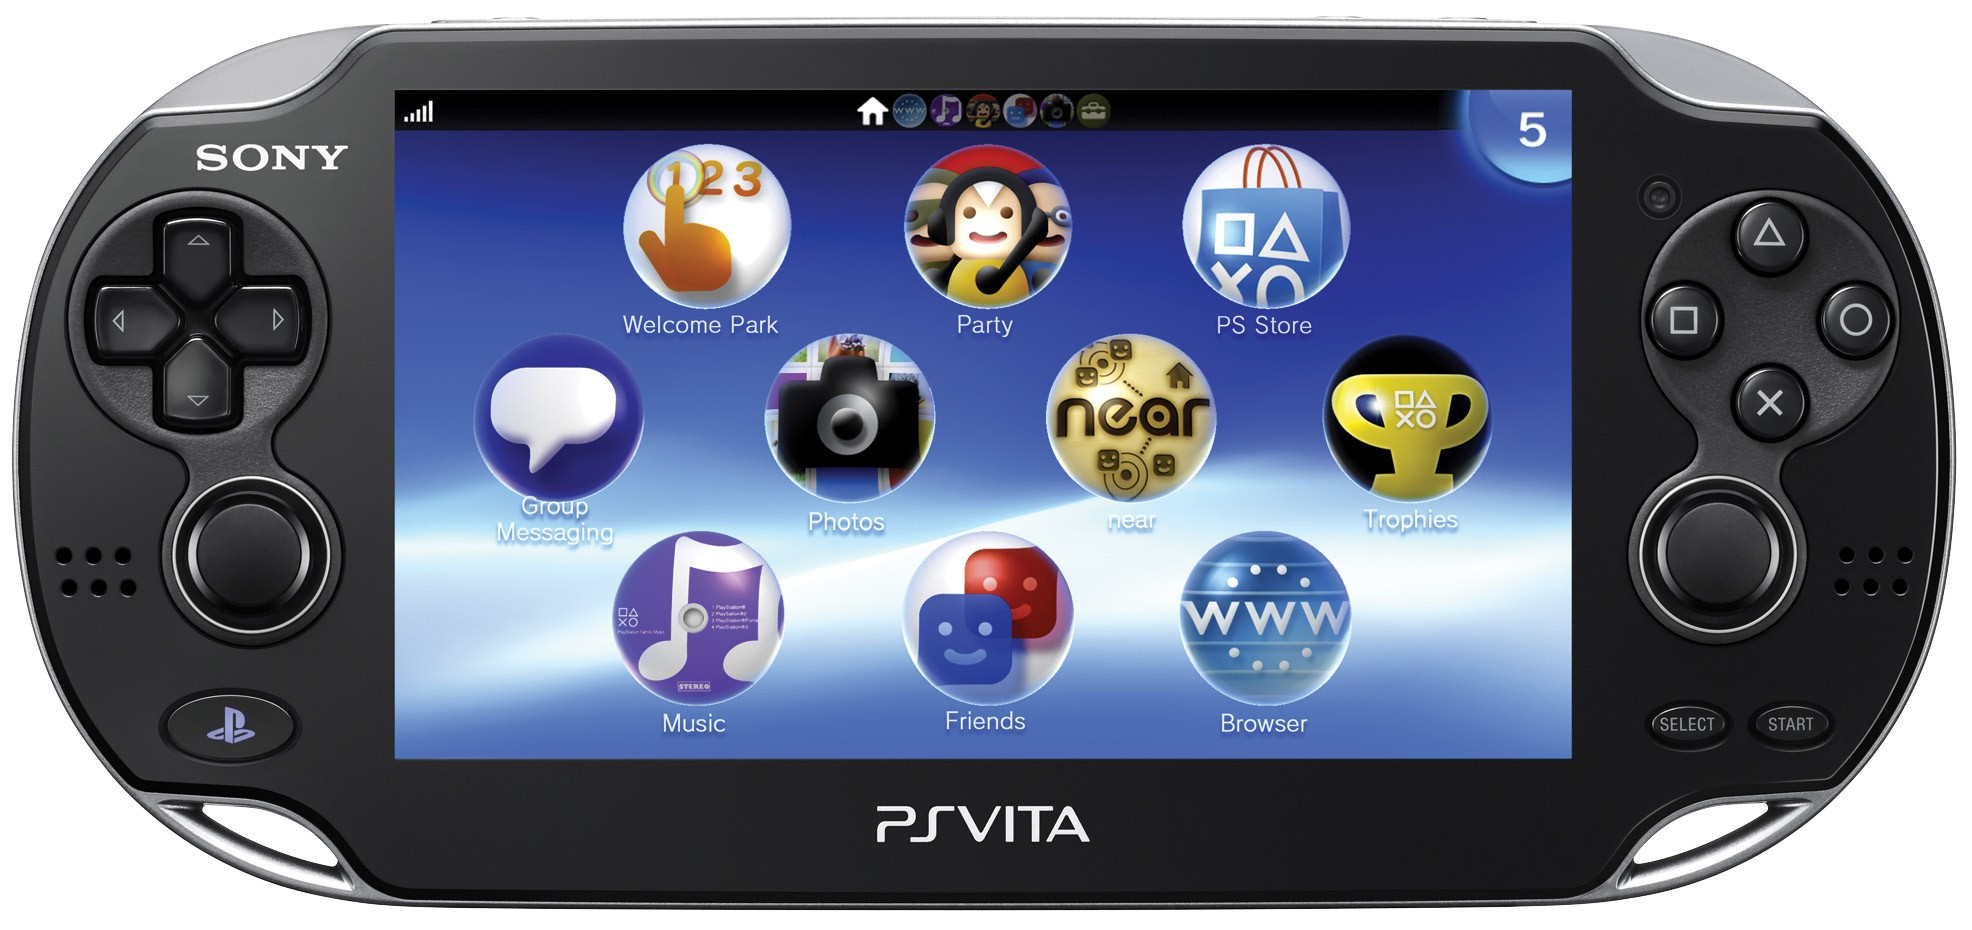 First Party Games Still In Development For PS Vita According To - Minecraft spiele ps vita